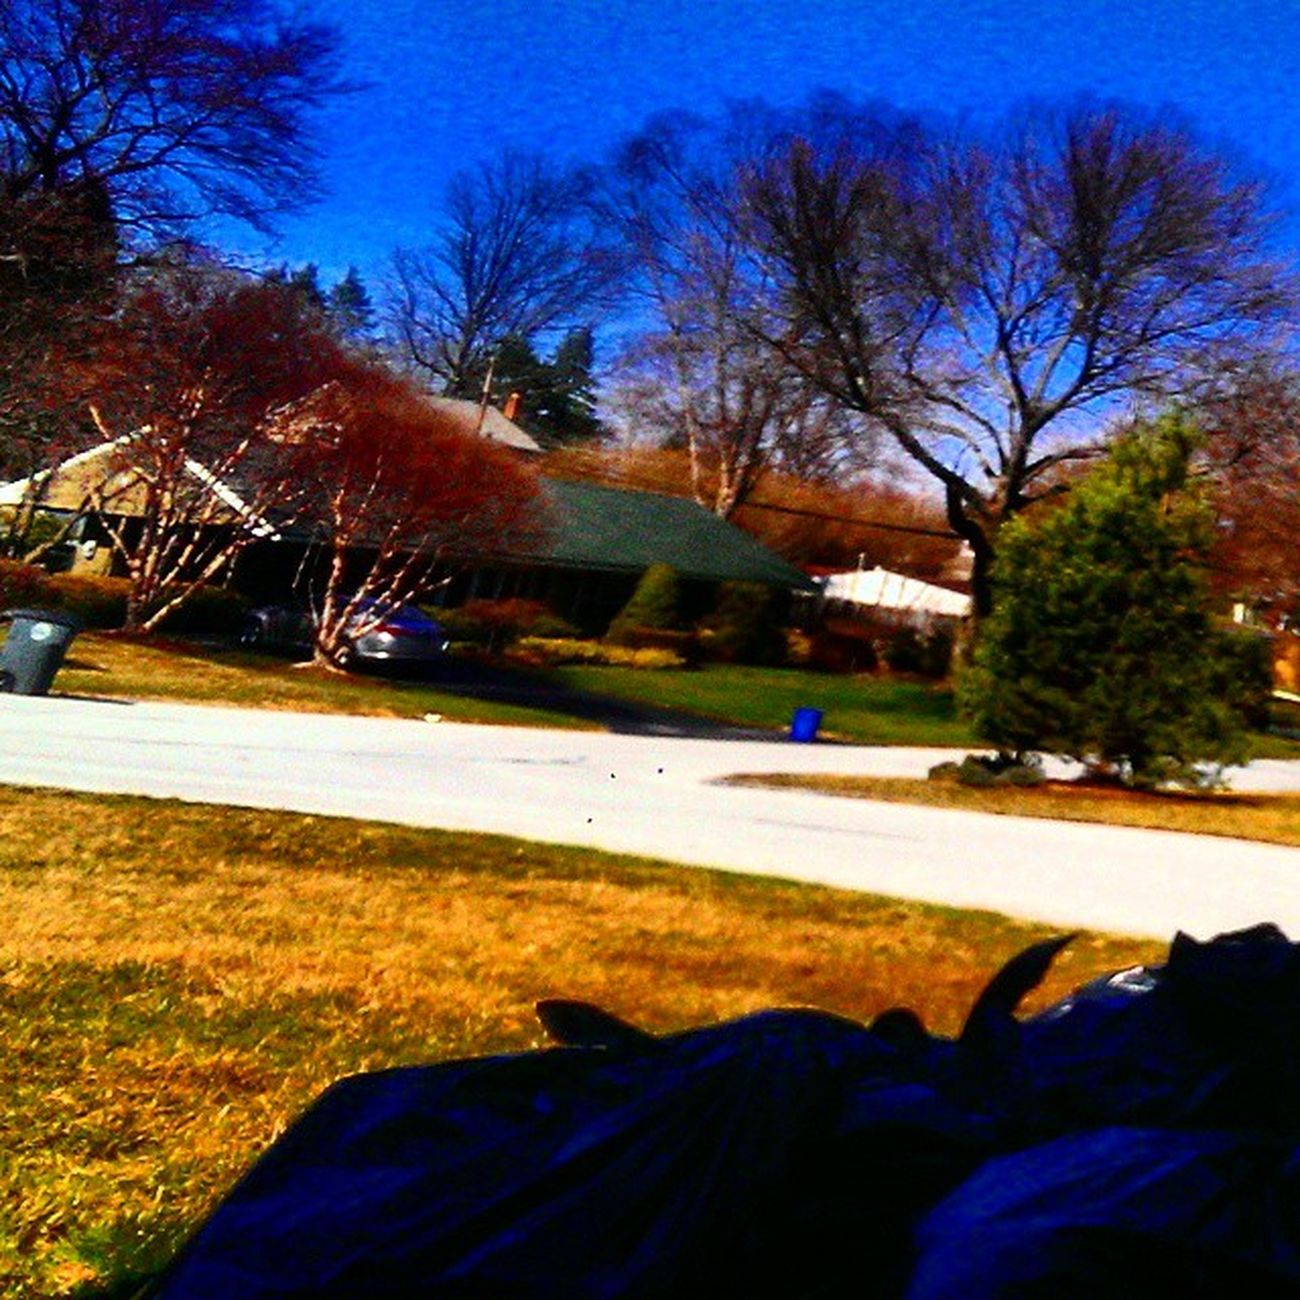 Igerspennsylvania Ig_pennsylvania Igworldclub Environment shadows sunny spring suburbs eastcoast pennsylvania yardwork shangrila peaceful zen wonderland mondayfunday week